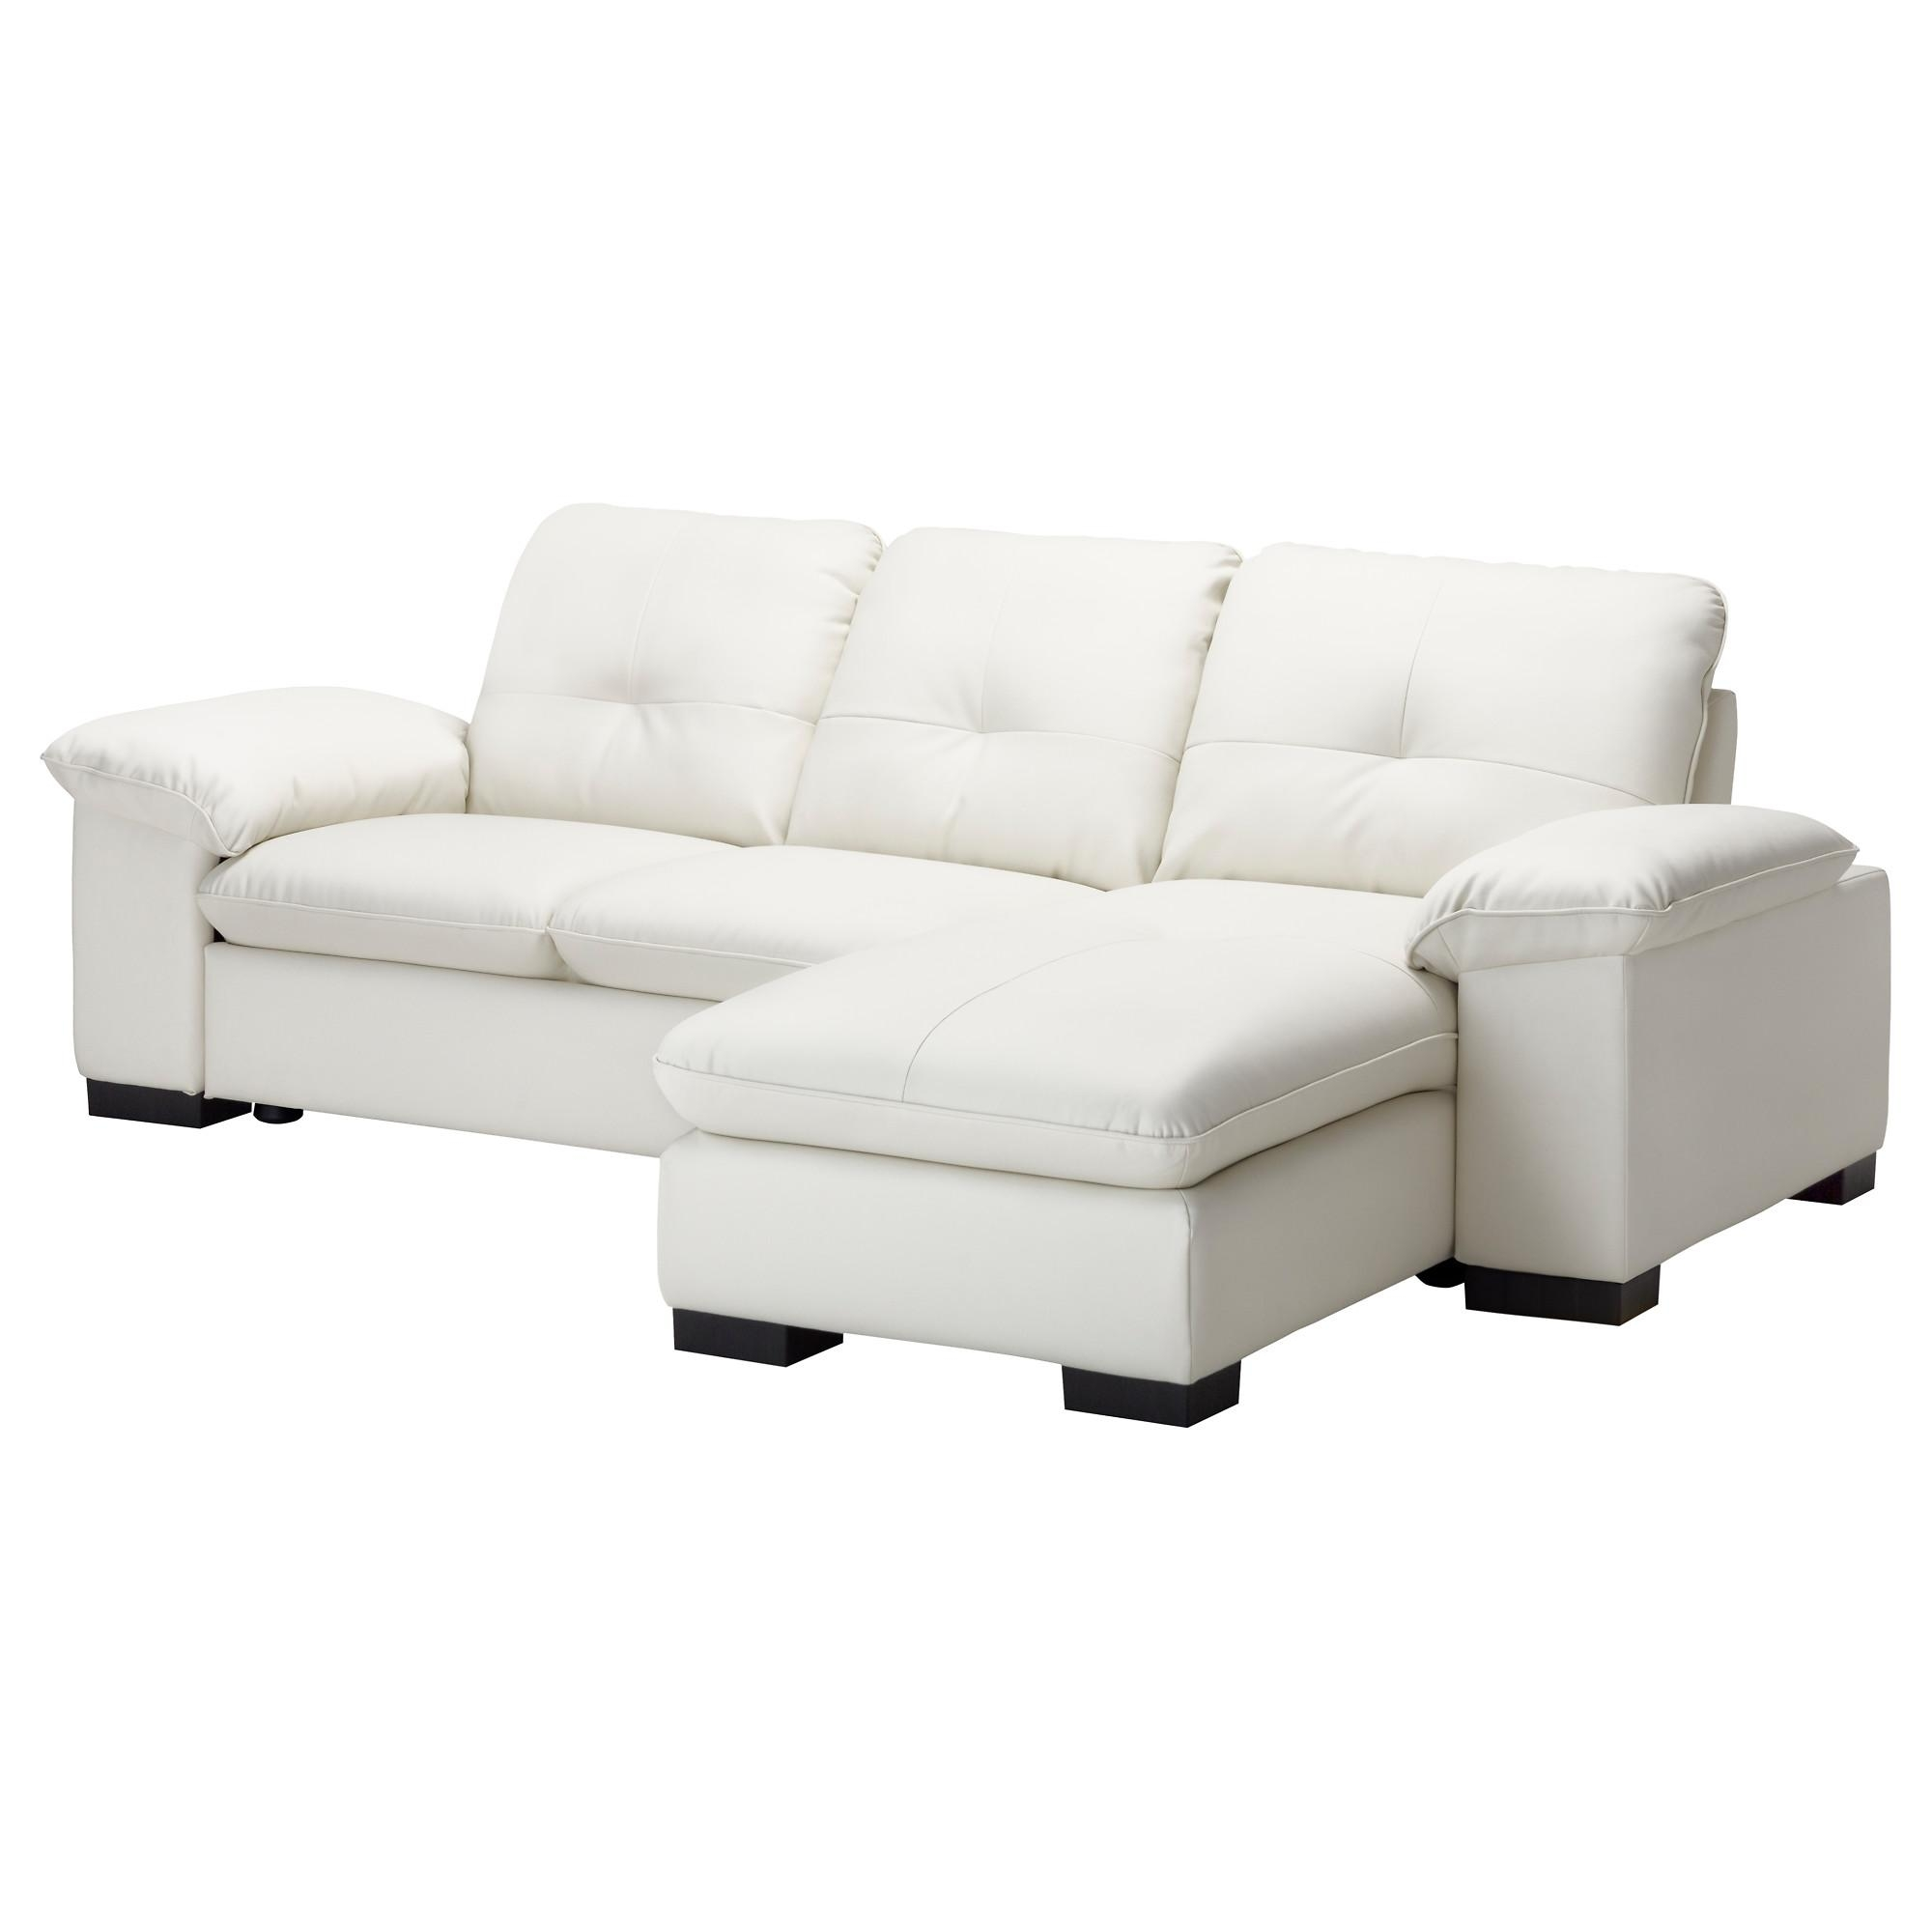 Dagstorp 2 Seat Sofa With Chaise Longue – Kimstad Off White – Ikea For Ikea Chaise Lounge Sofa (Image 3 of 20)